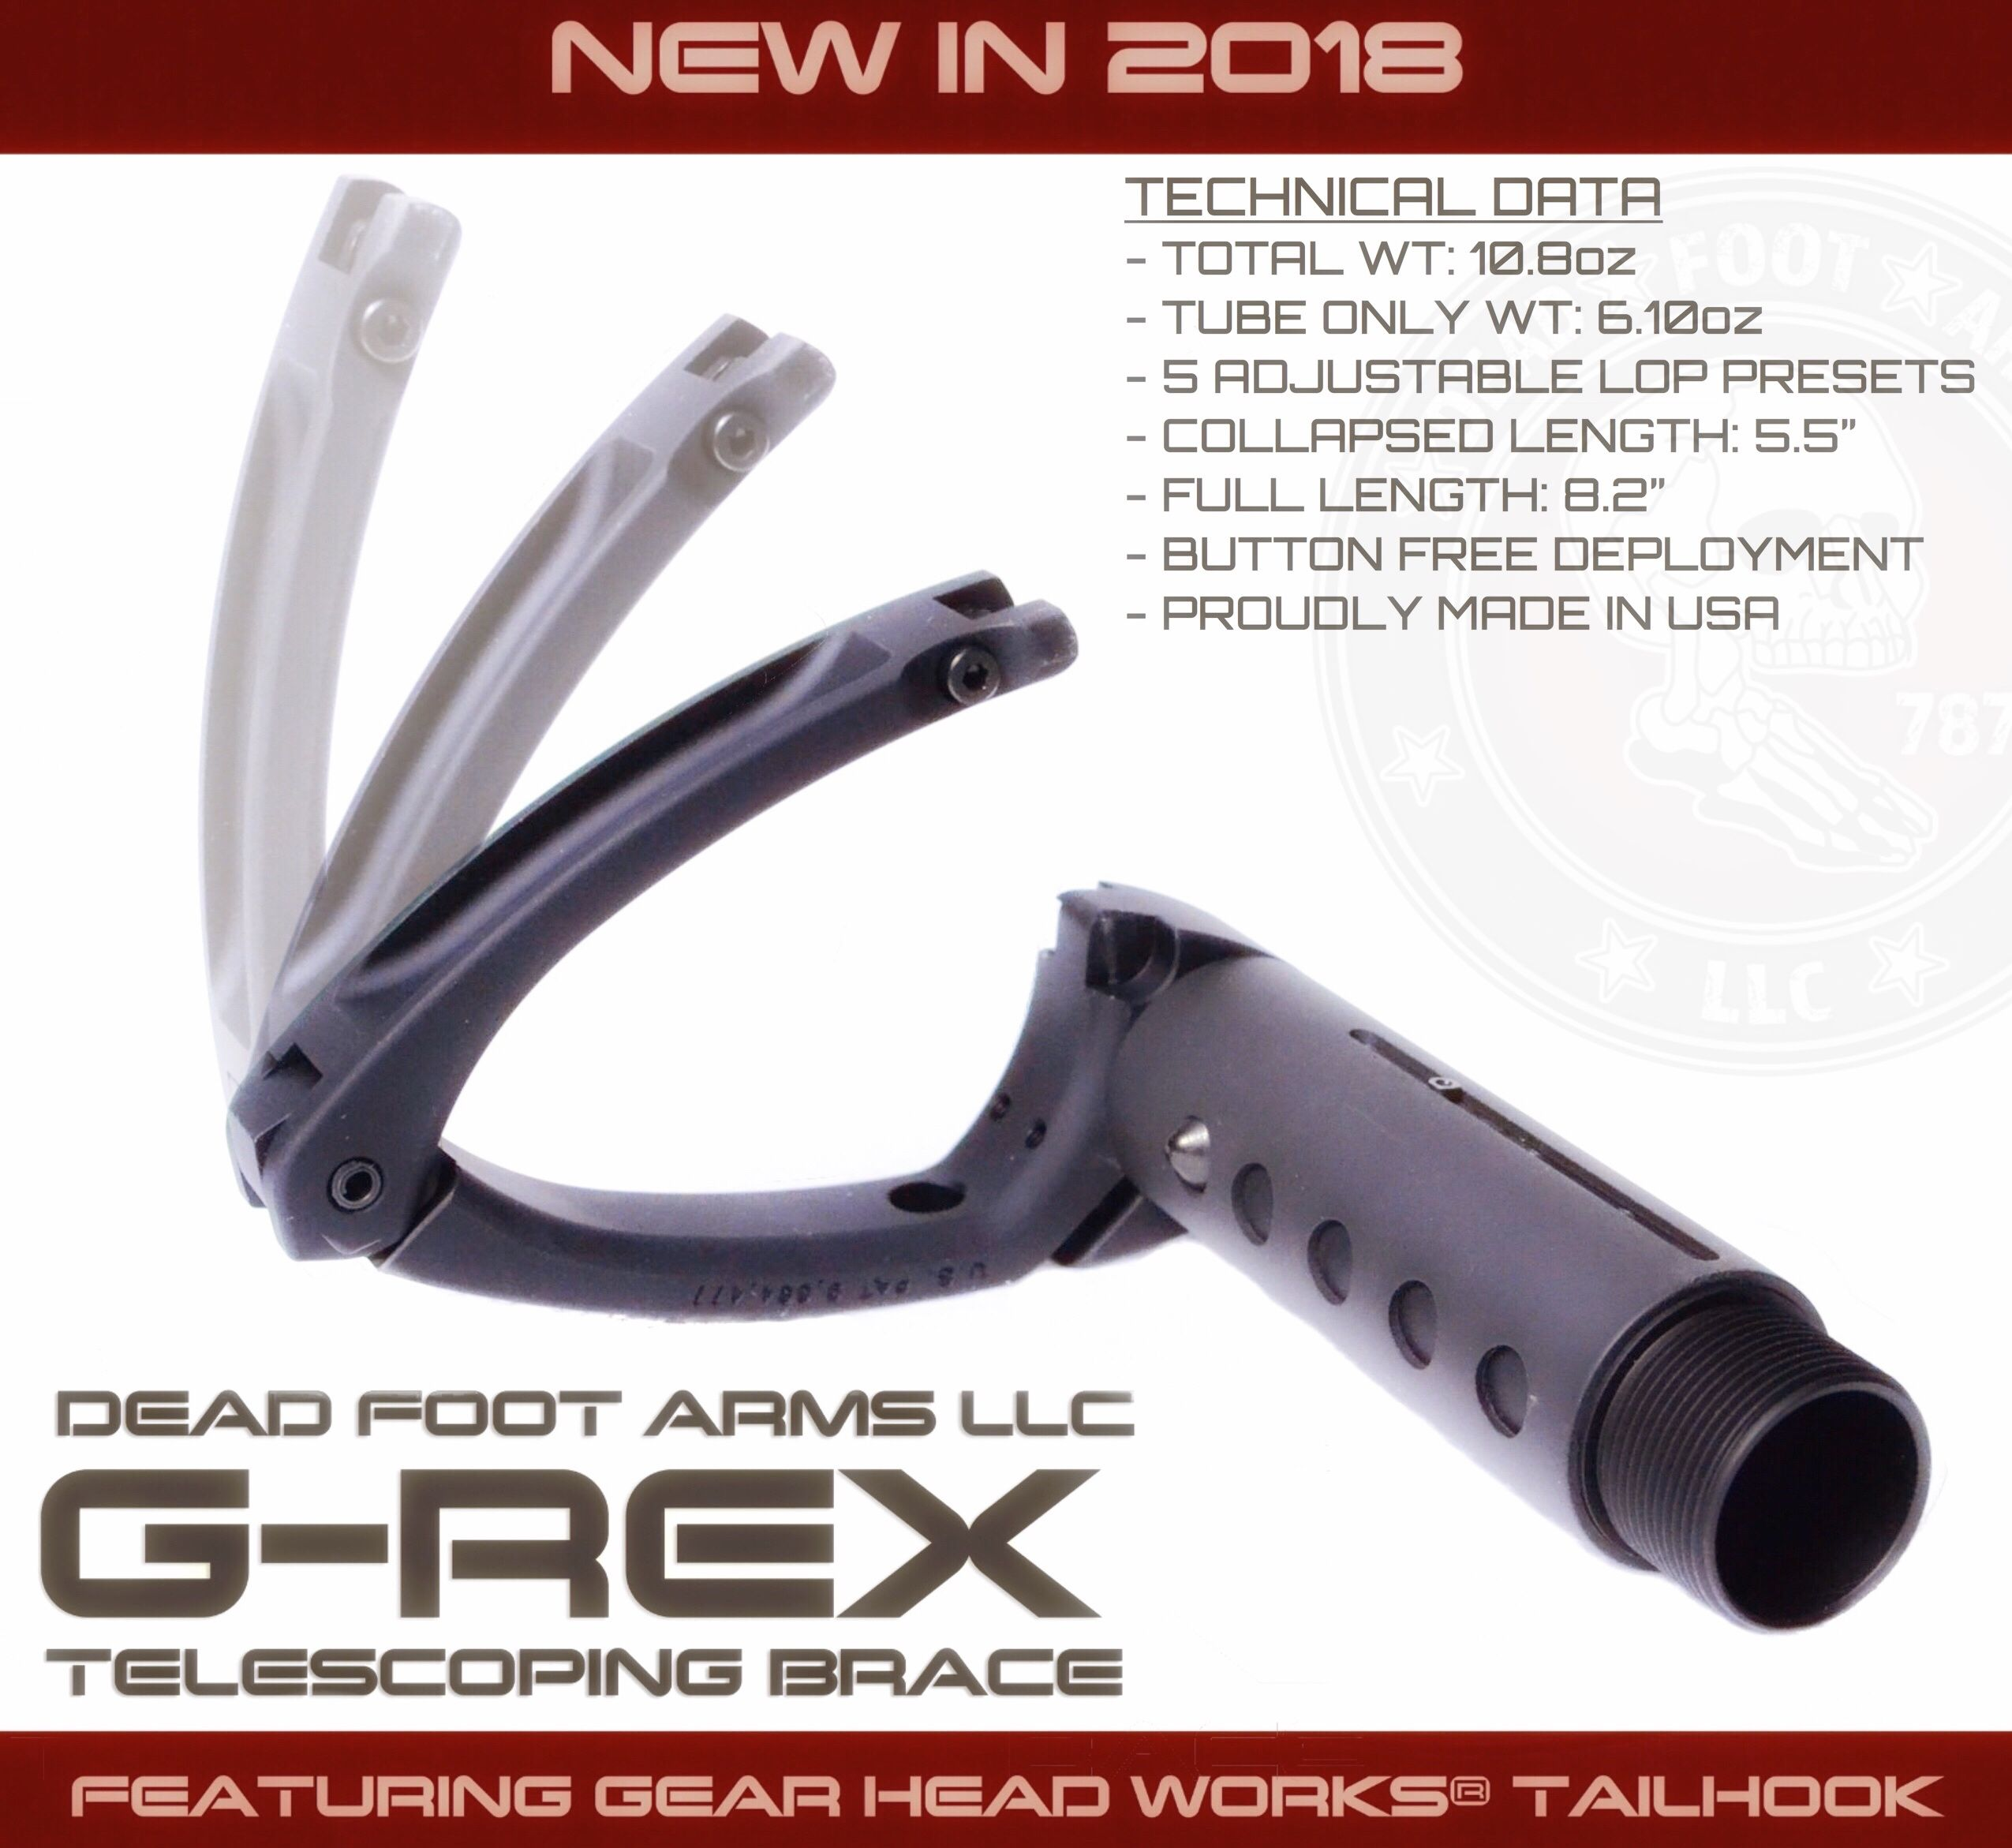 AR15 Side Folding Stocks & Accessories   Dead Foot Arms